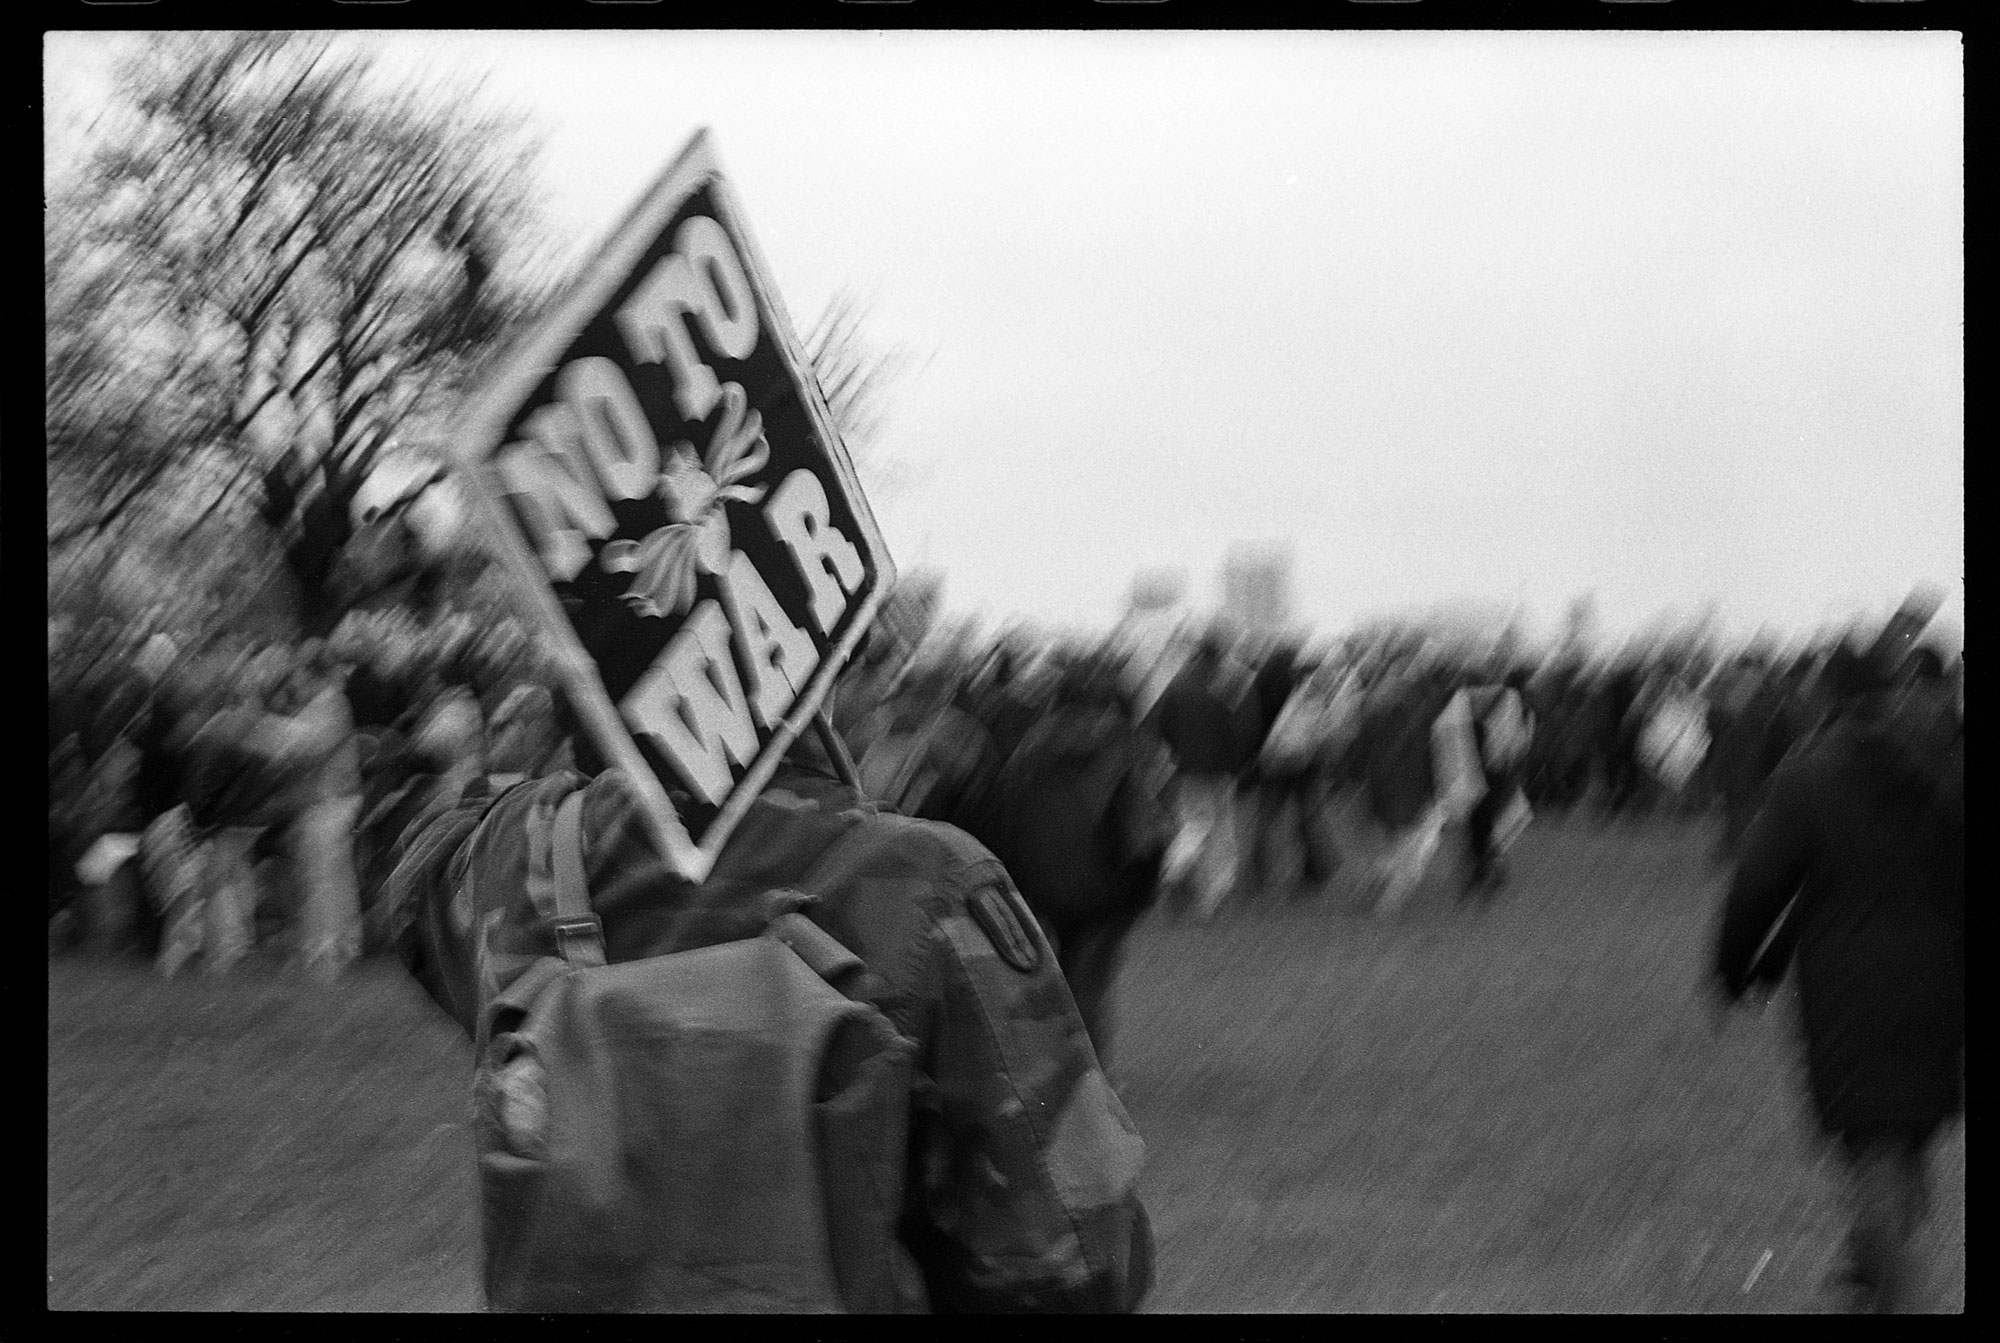 WEB_STW_no-to-war-sign_hyde-park-2003_dannyburrows